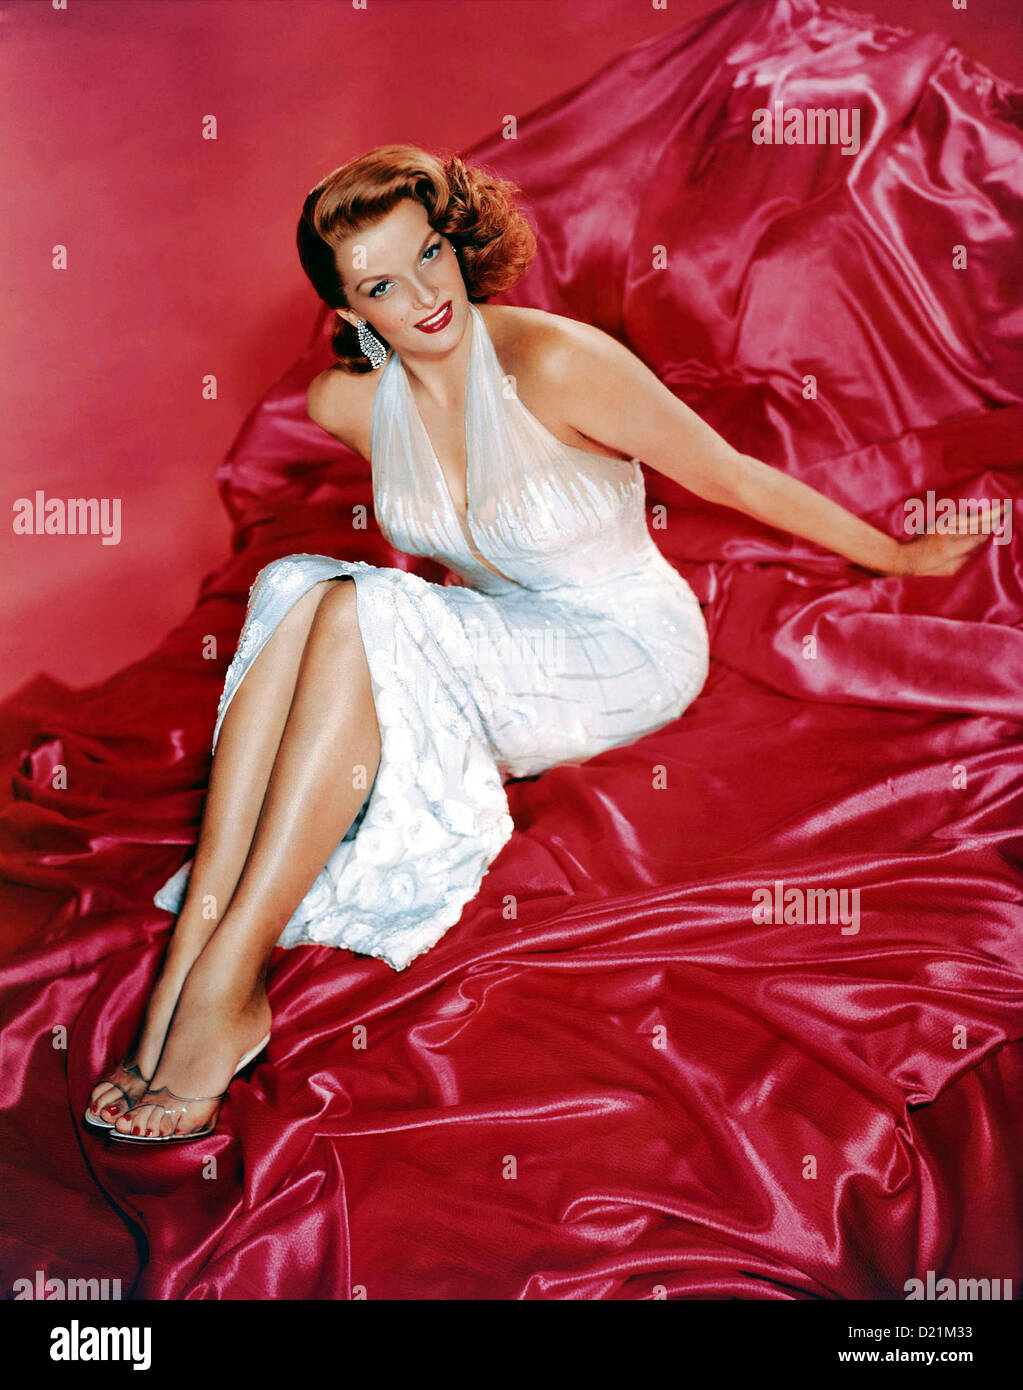 JANE RUSSELL (1921-2001) US film actress in  1956 while filming The Revolt of Mamie Stover - Stock Image